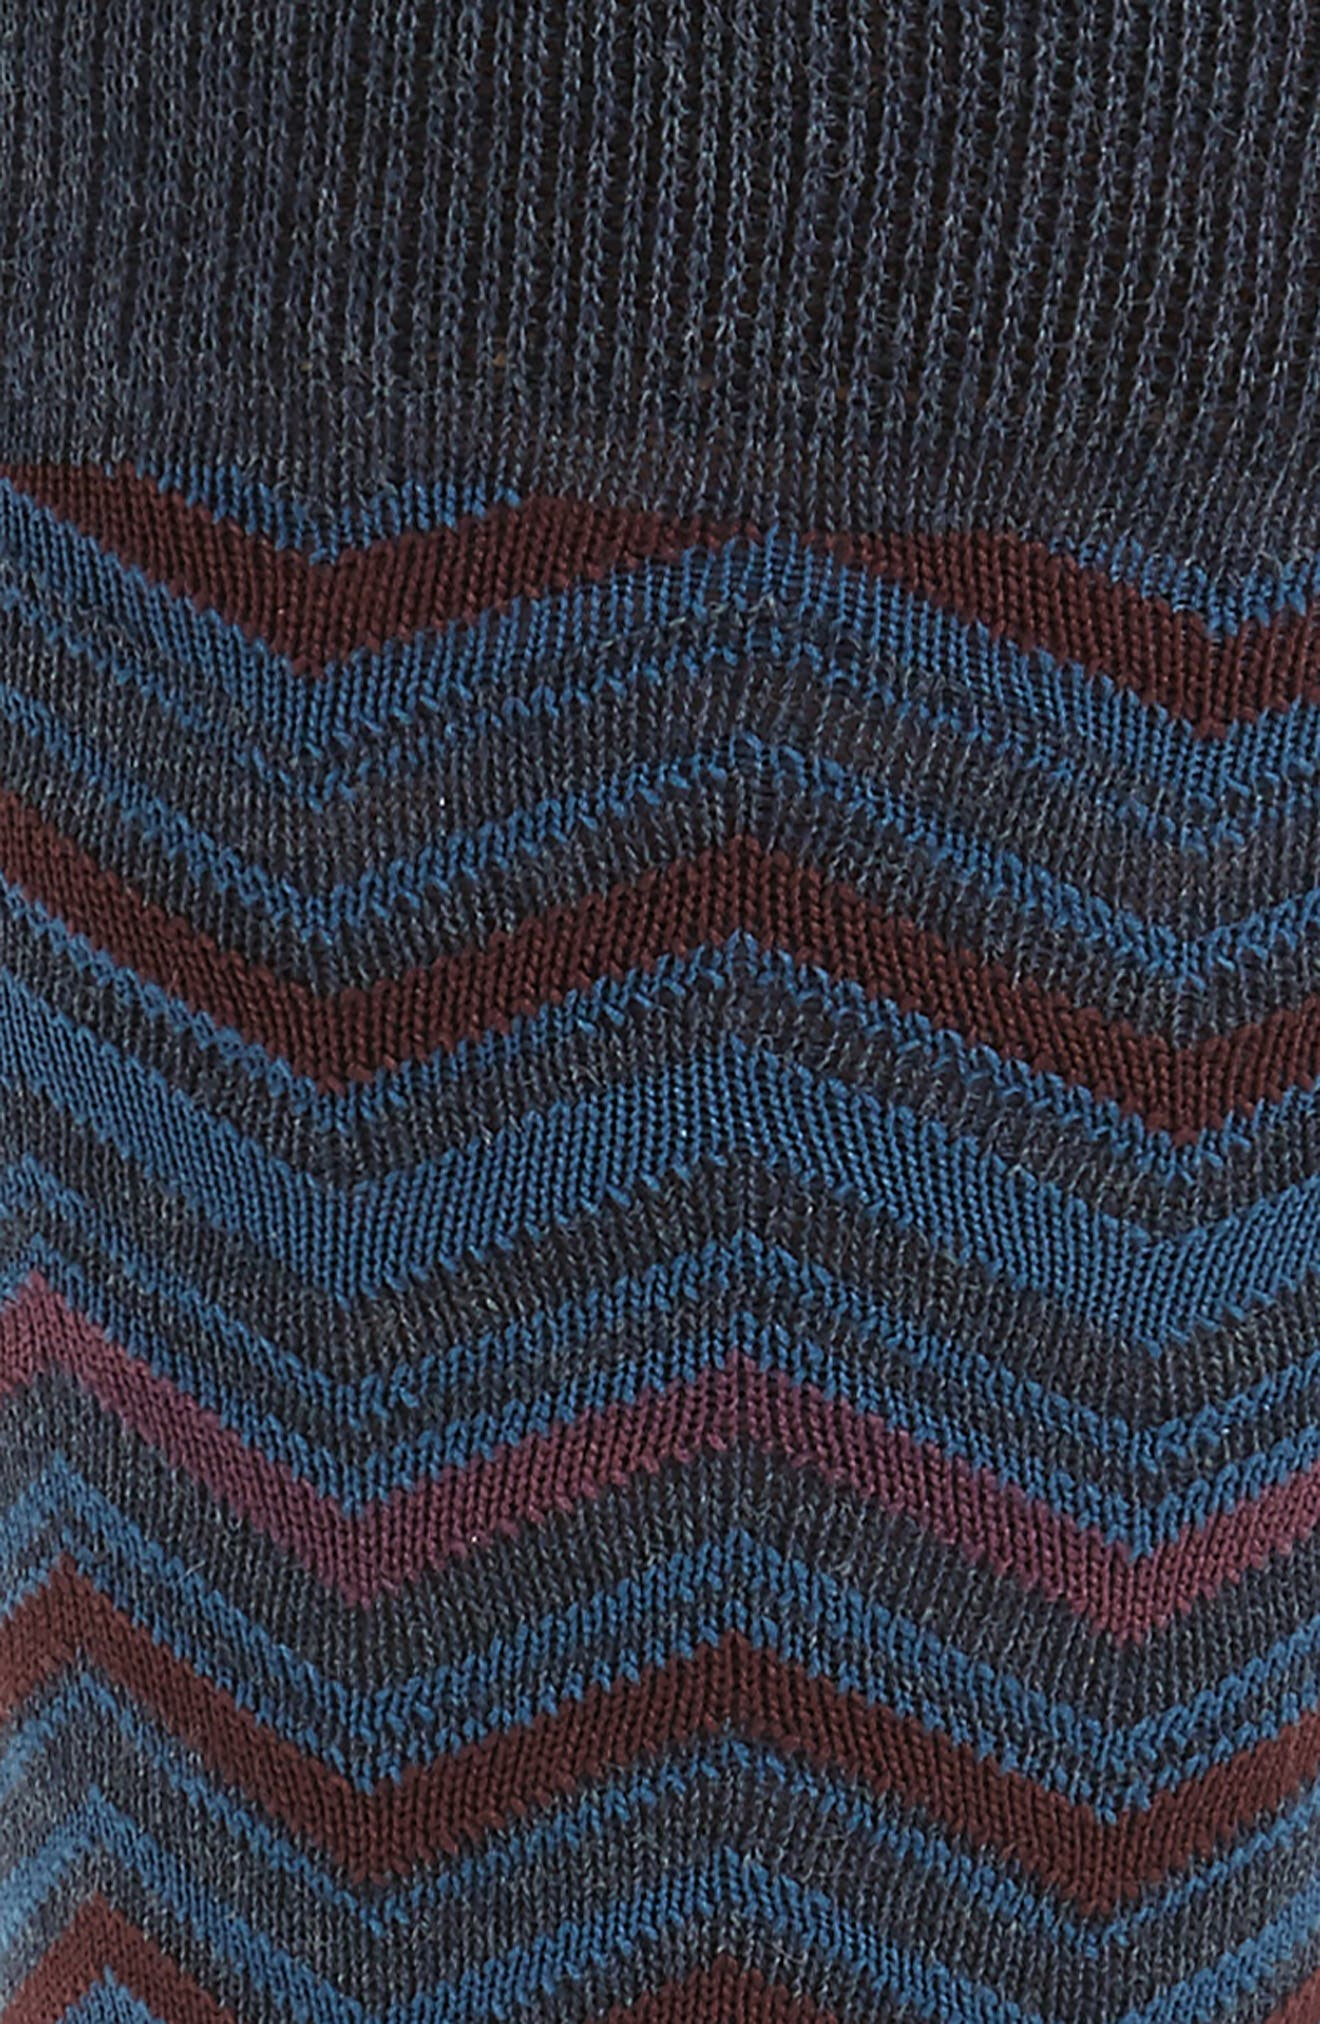 Chevron Socks,                             Alternate thumbnail 2, color,                             Navy Heather